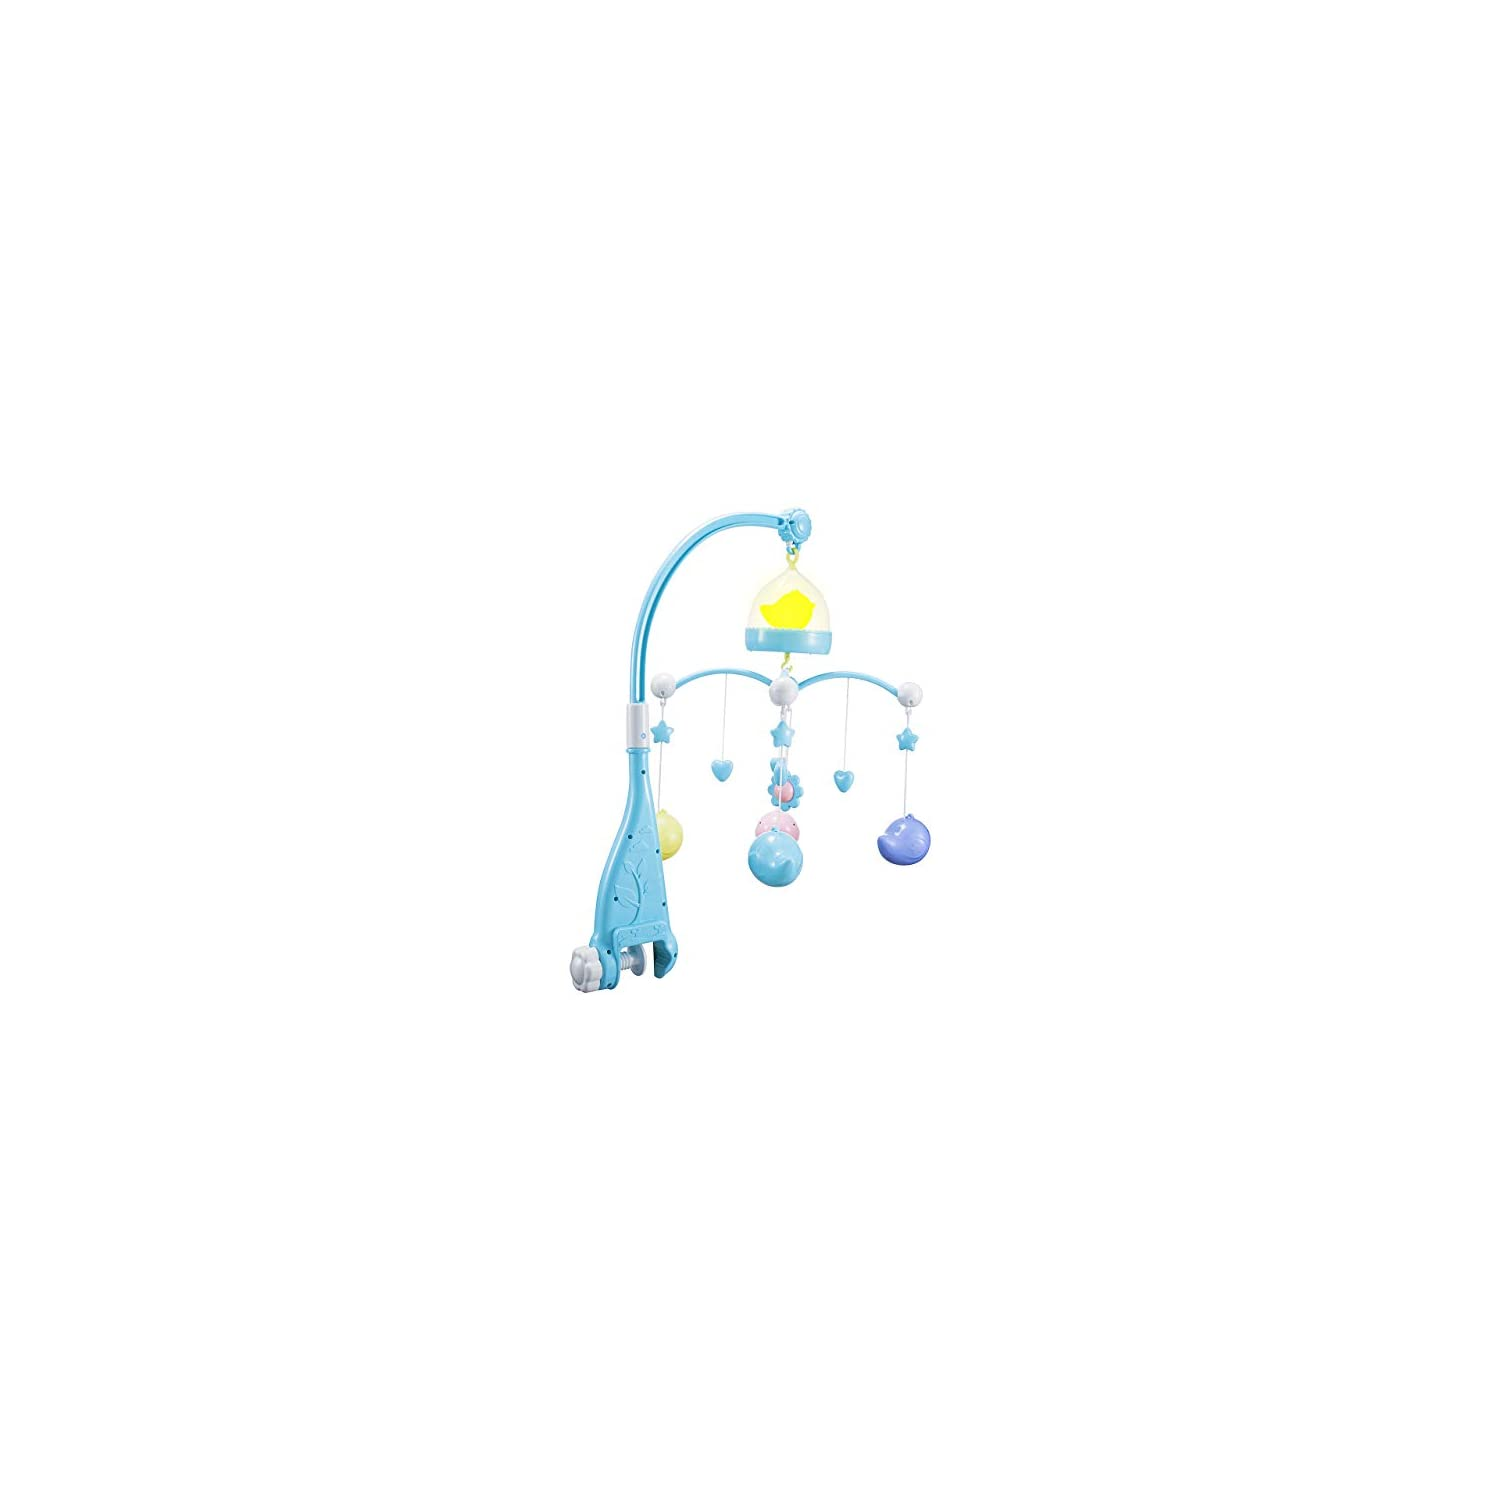 huaxinghuishengwukeji Night Light Baby Crib Mobile